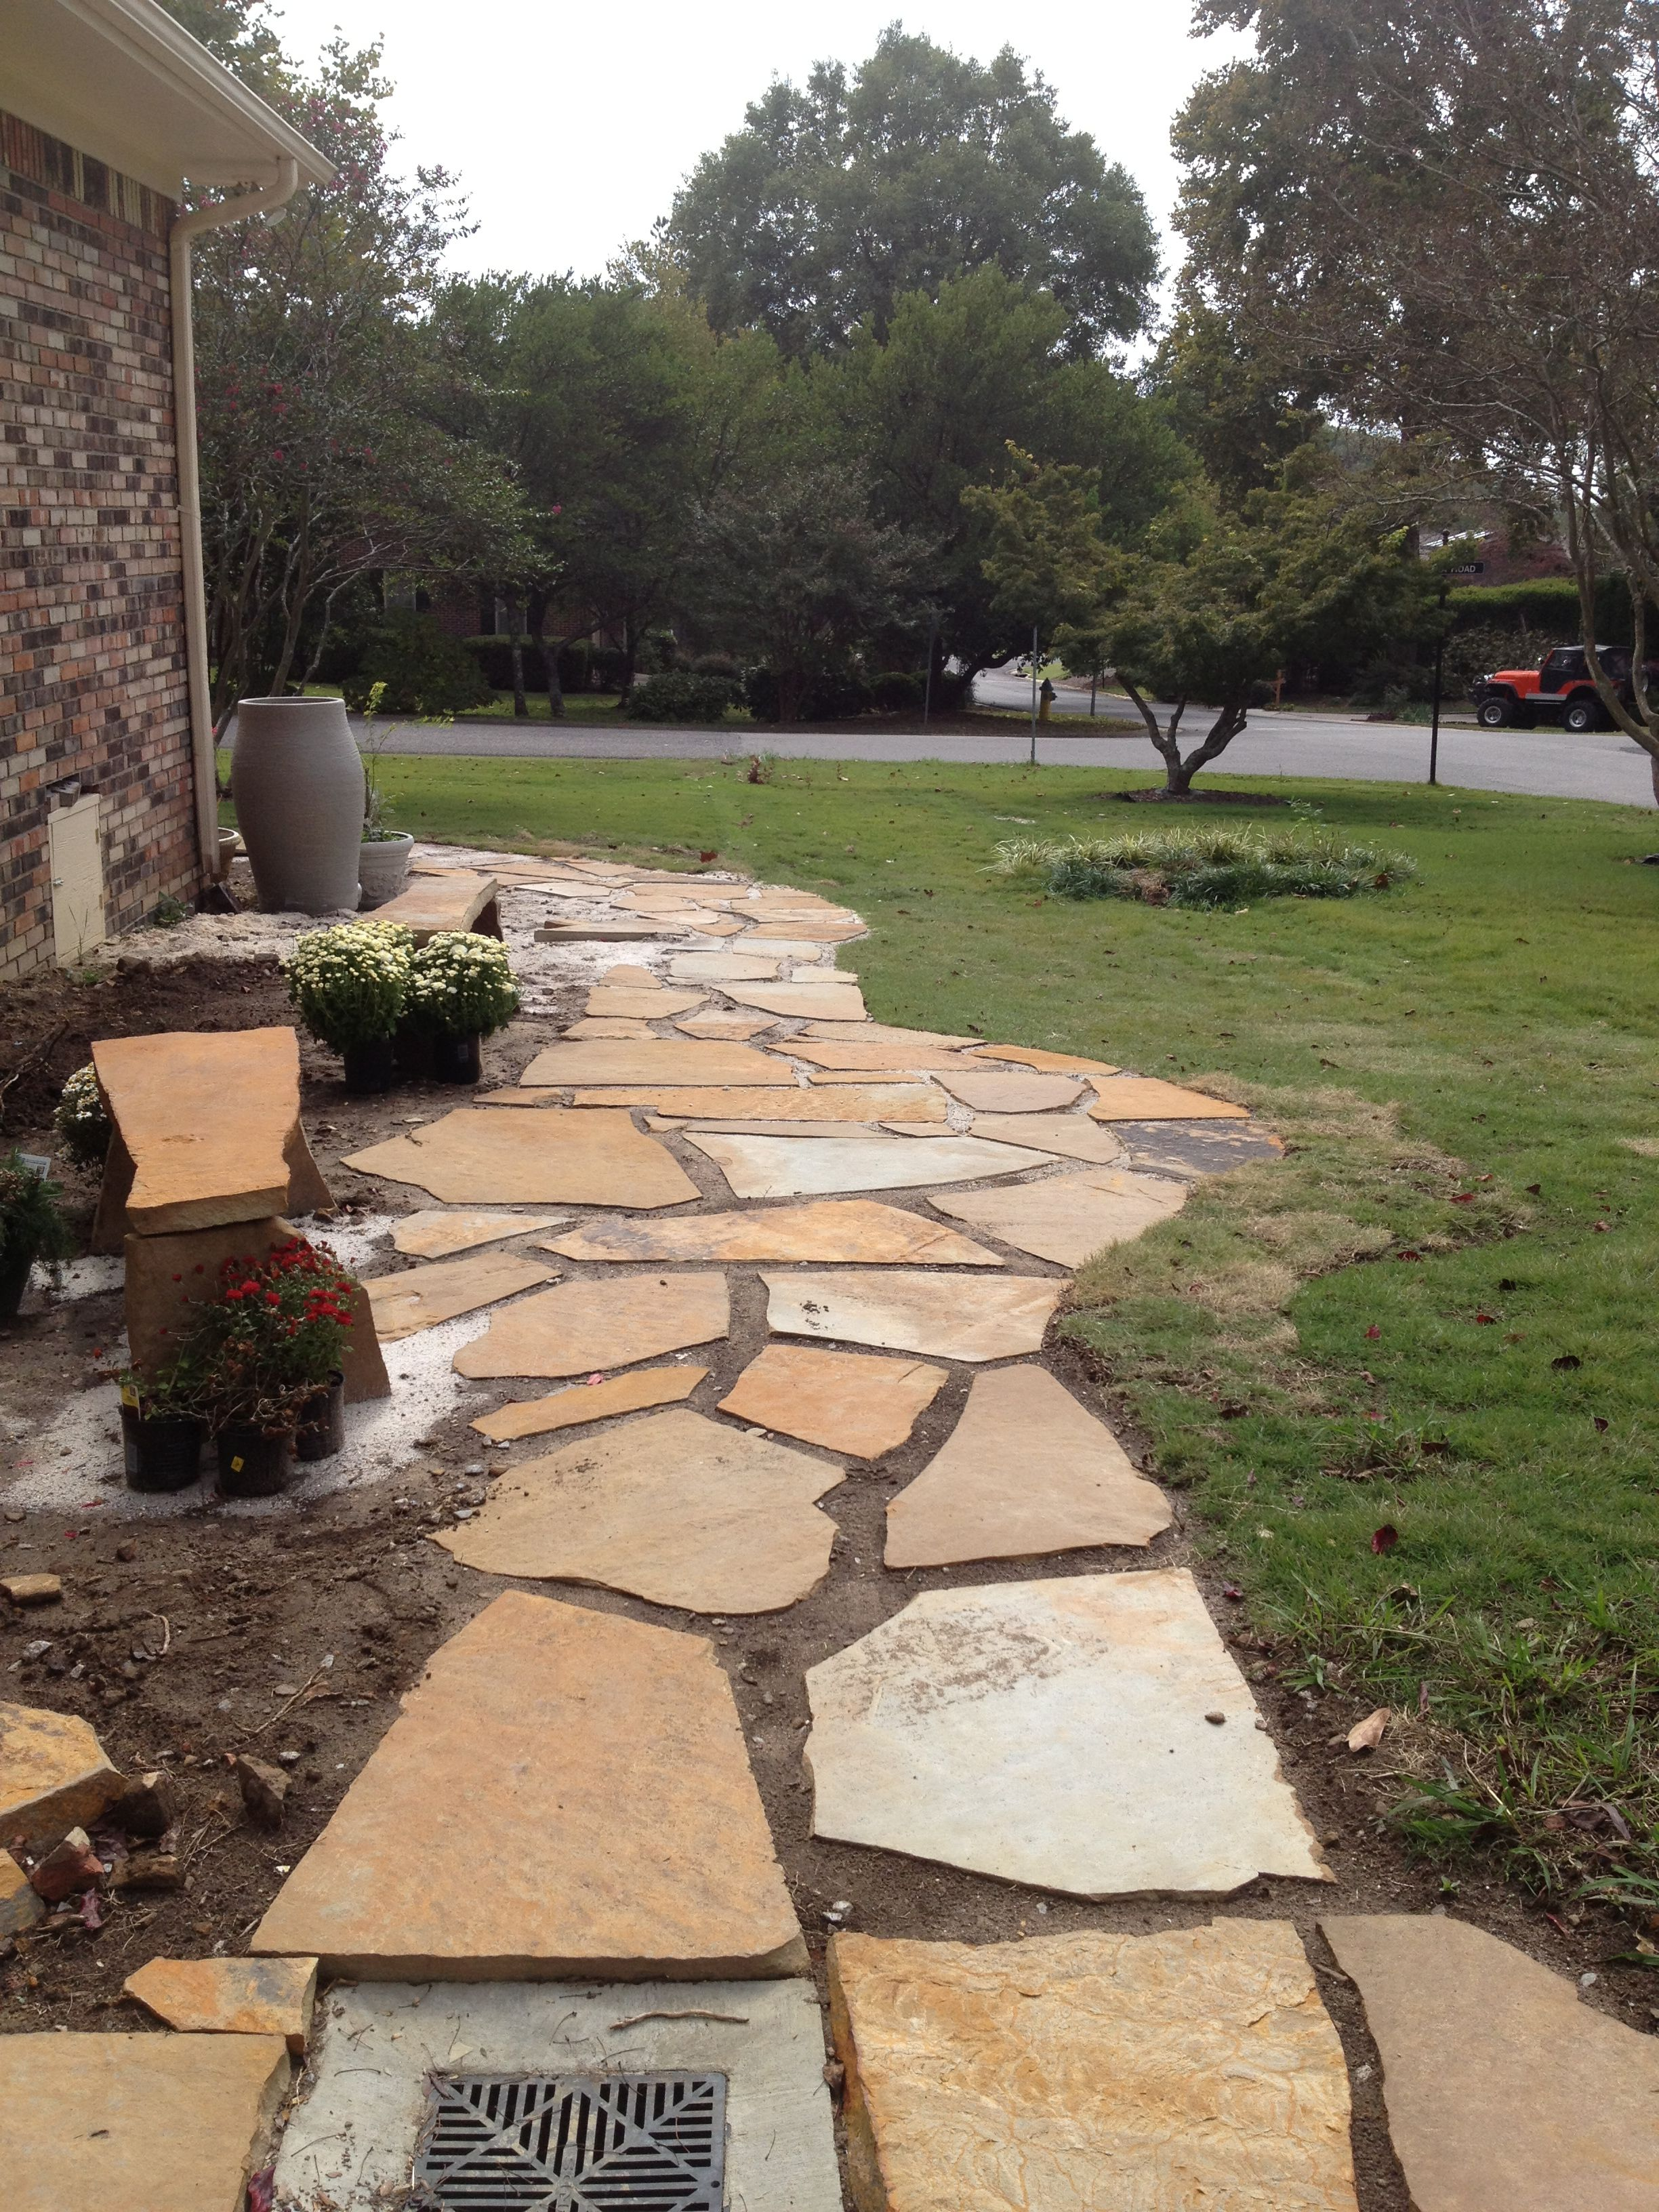 Alabama brown flagstone walkway with stone benches.